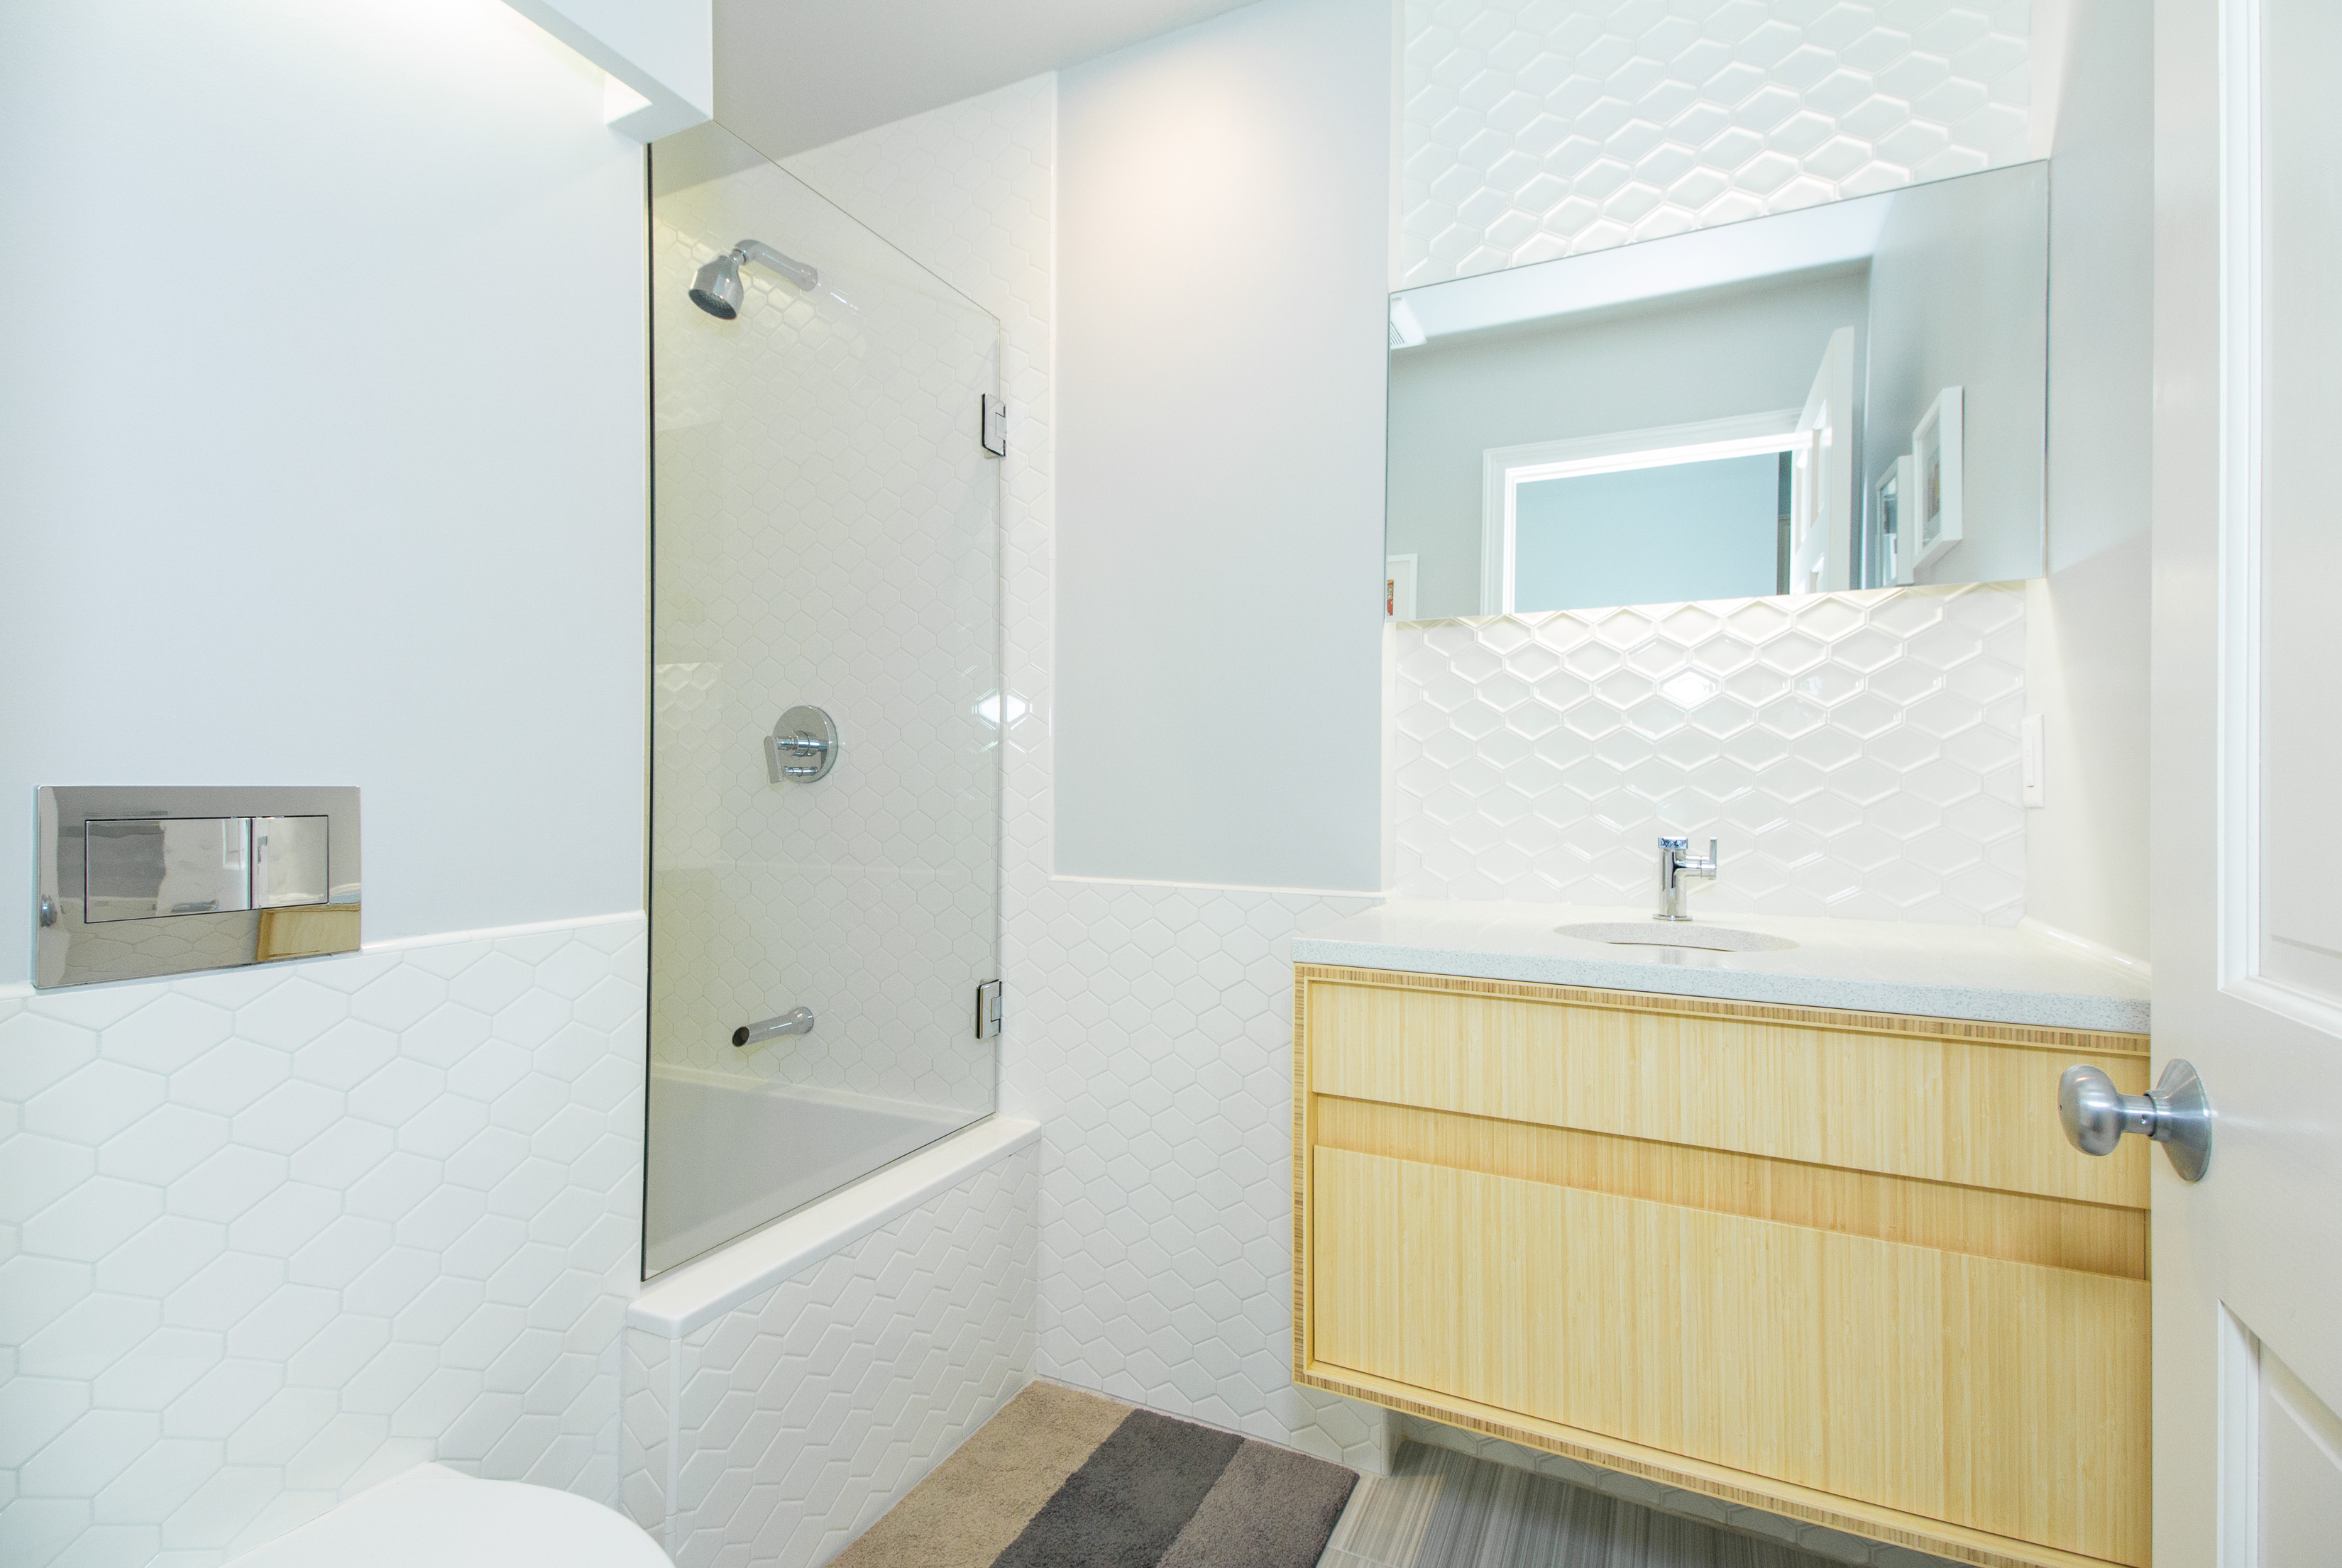 Bathroom Remodel - Bay State Refinishing & Remodeling -Boston MA